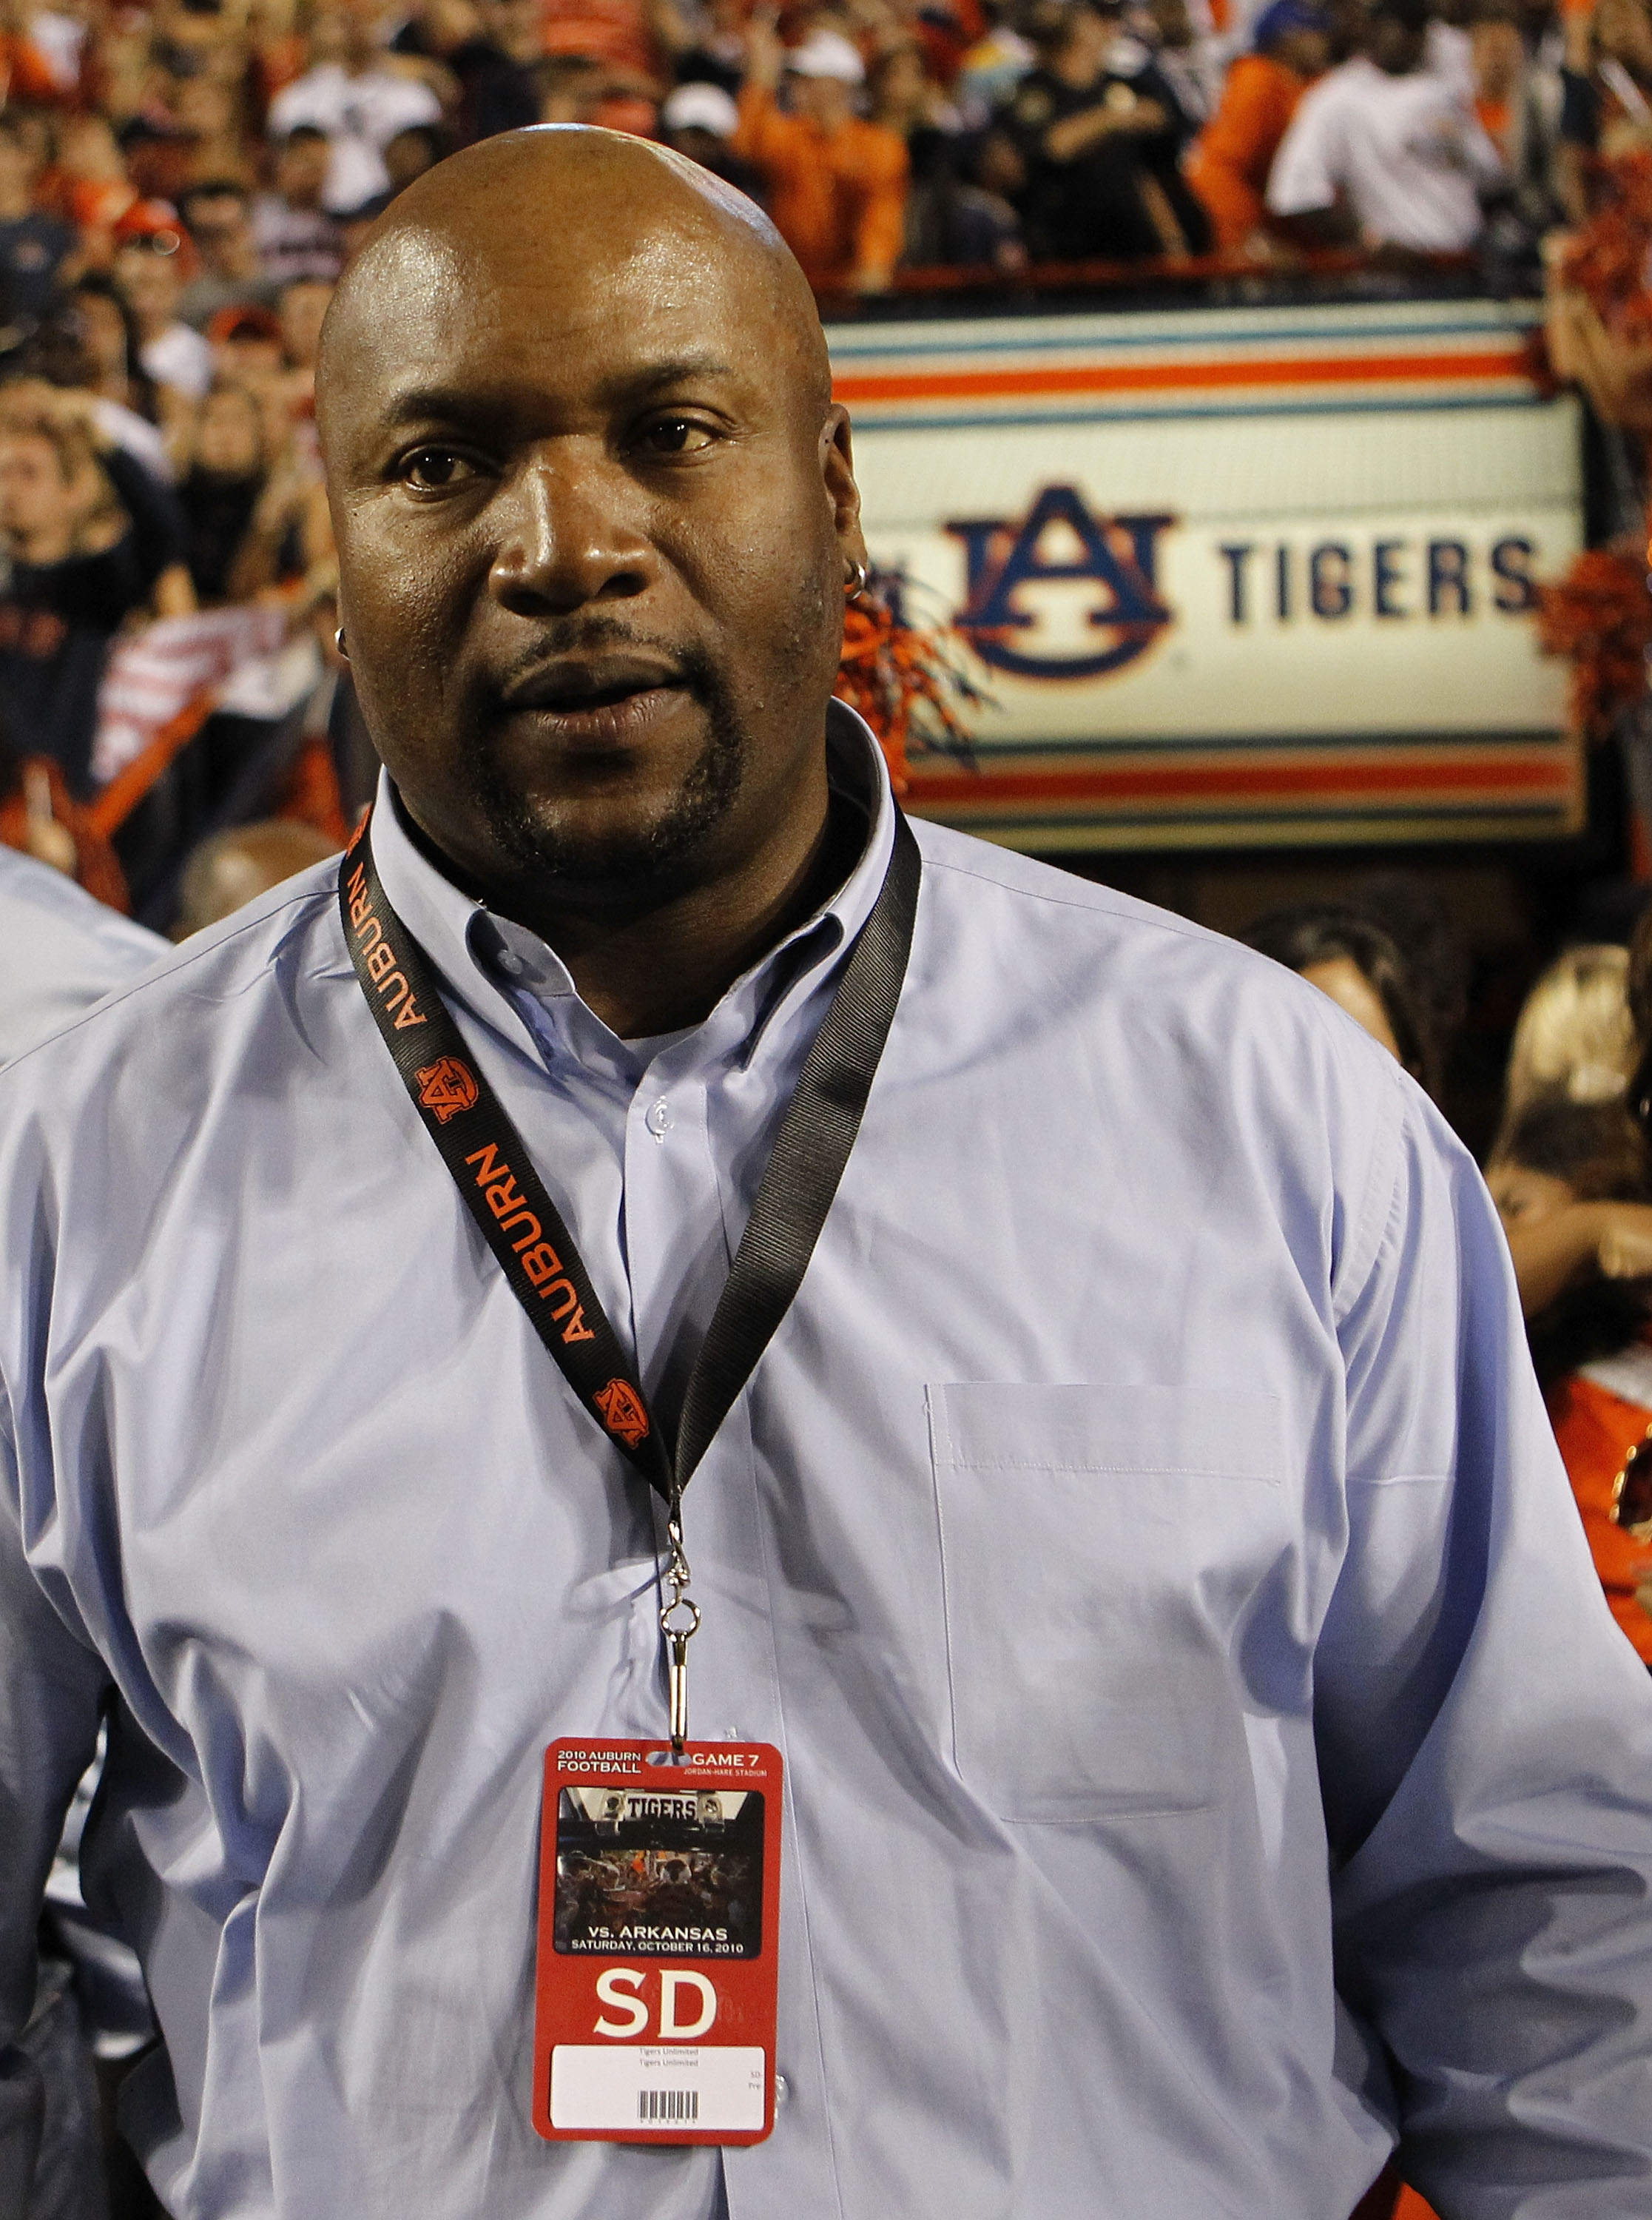 AUBURN - OCTOBER 16:  Former Auburn Tigers football player Bo Jackson watches the action on the sideline during the game between the Auburn Tigers and the Arkansas Razorbacks Auburn Tigers at Jordan-Hare Stadium on October 16, 2010 in Auburn, Alabama.  Th